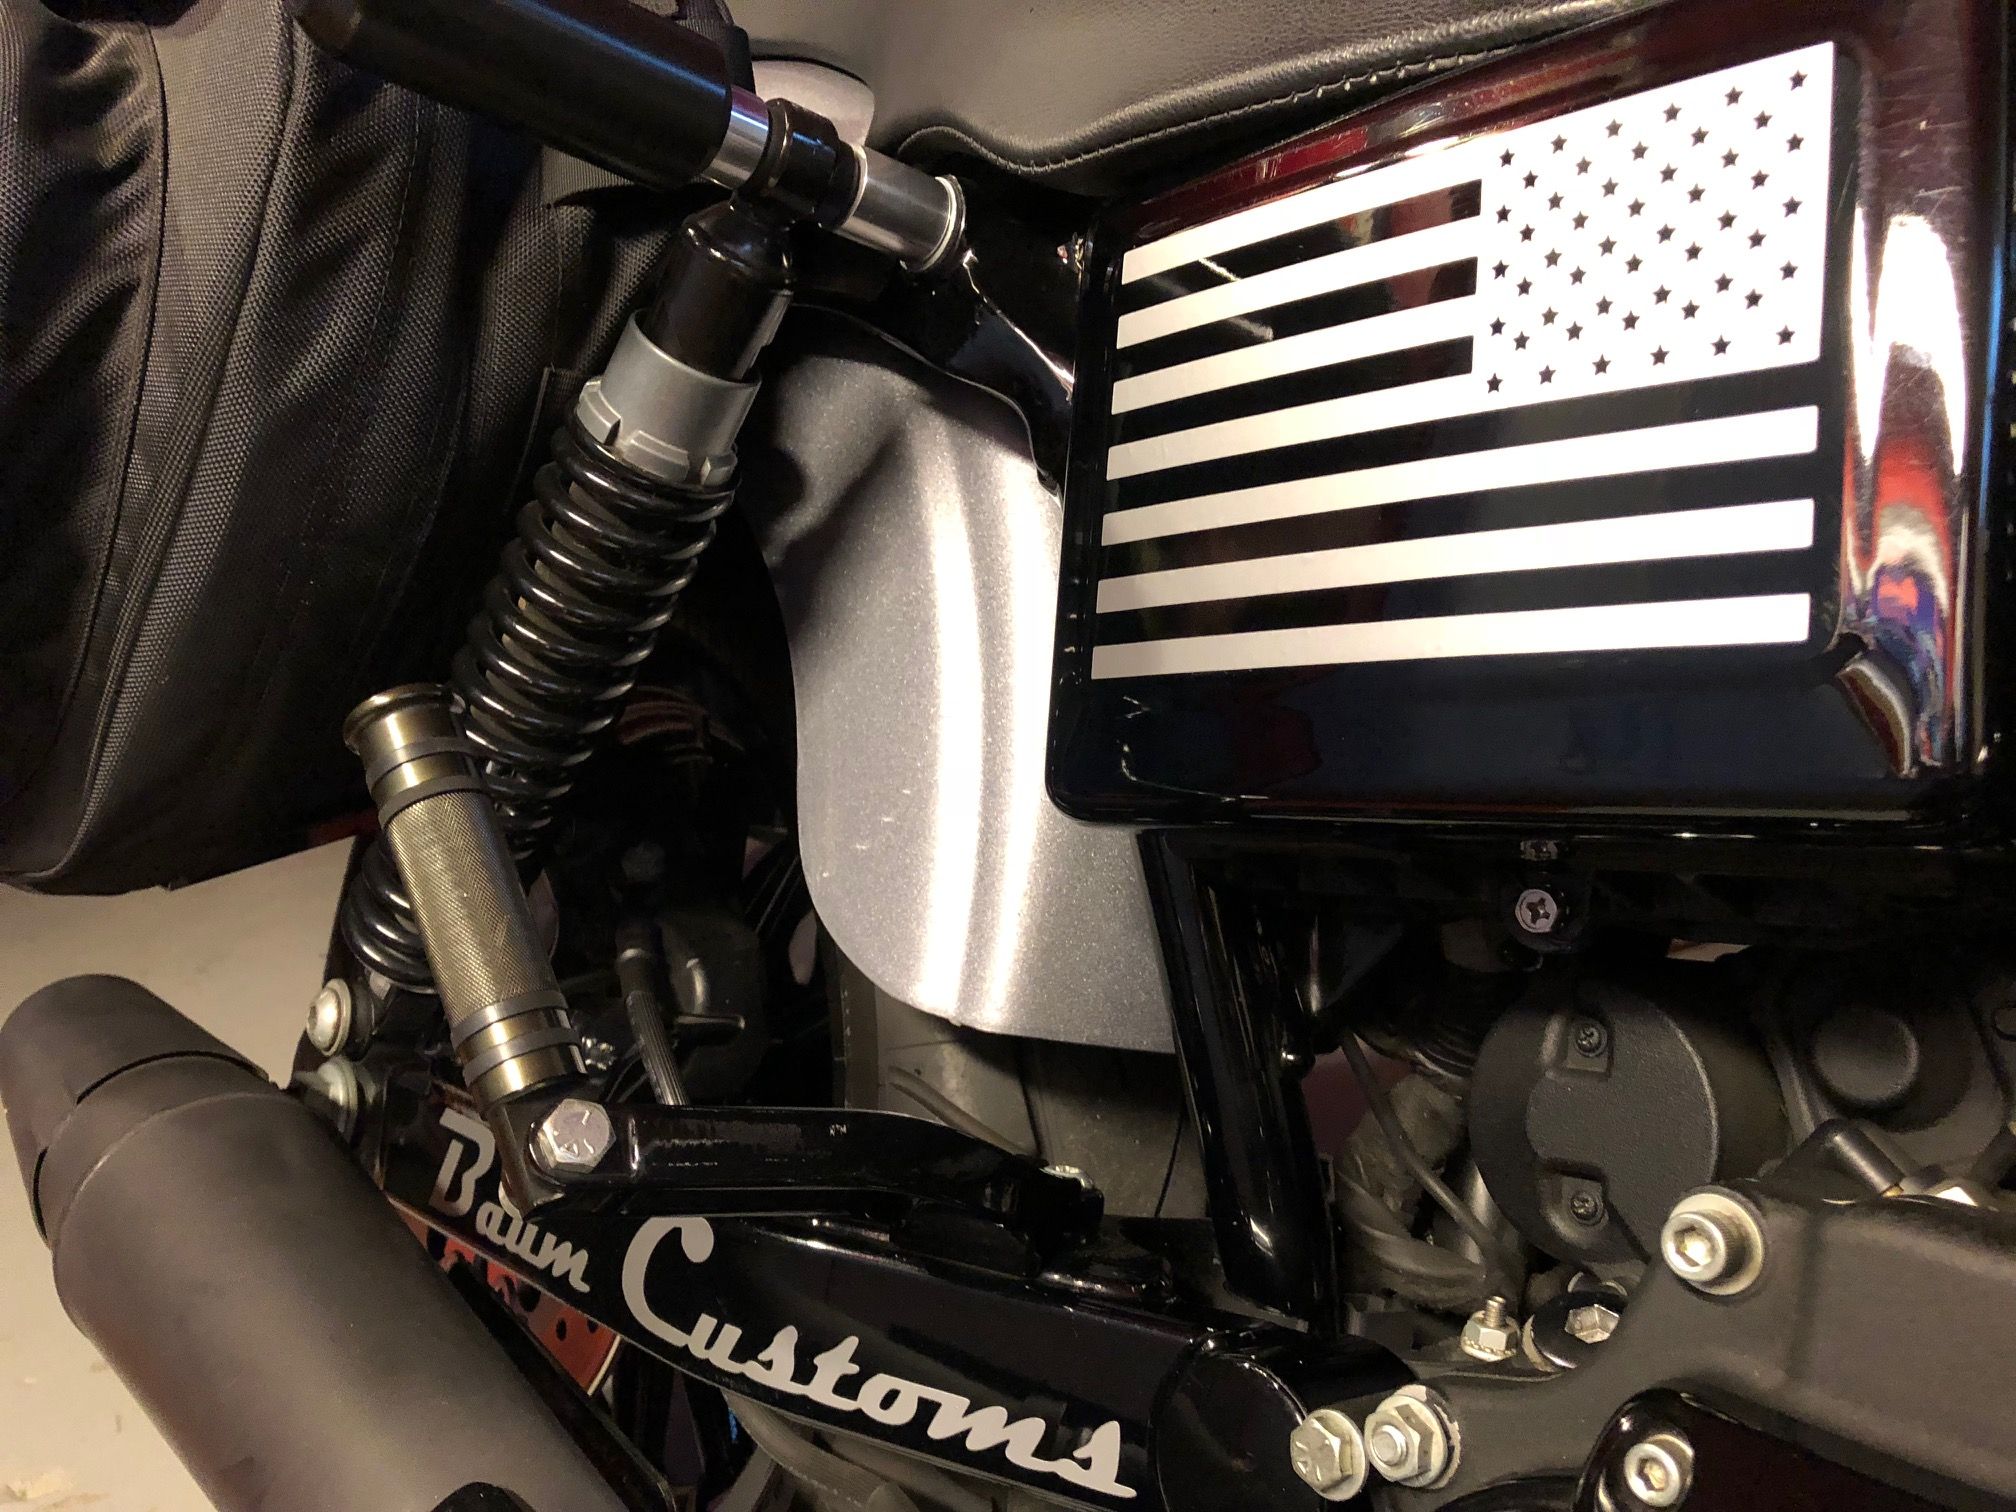 Harley Davidson Fuse Box Cover Not Lossing Wiring Diagram Softail American Flag Battery Decal Baum Customs Rh Baumcustoms Com 2011 Heritage Classic Location Corrosion